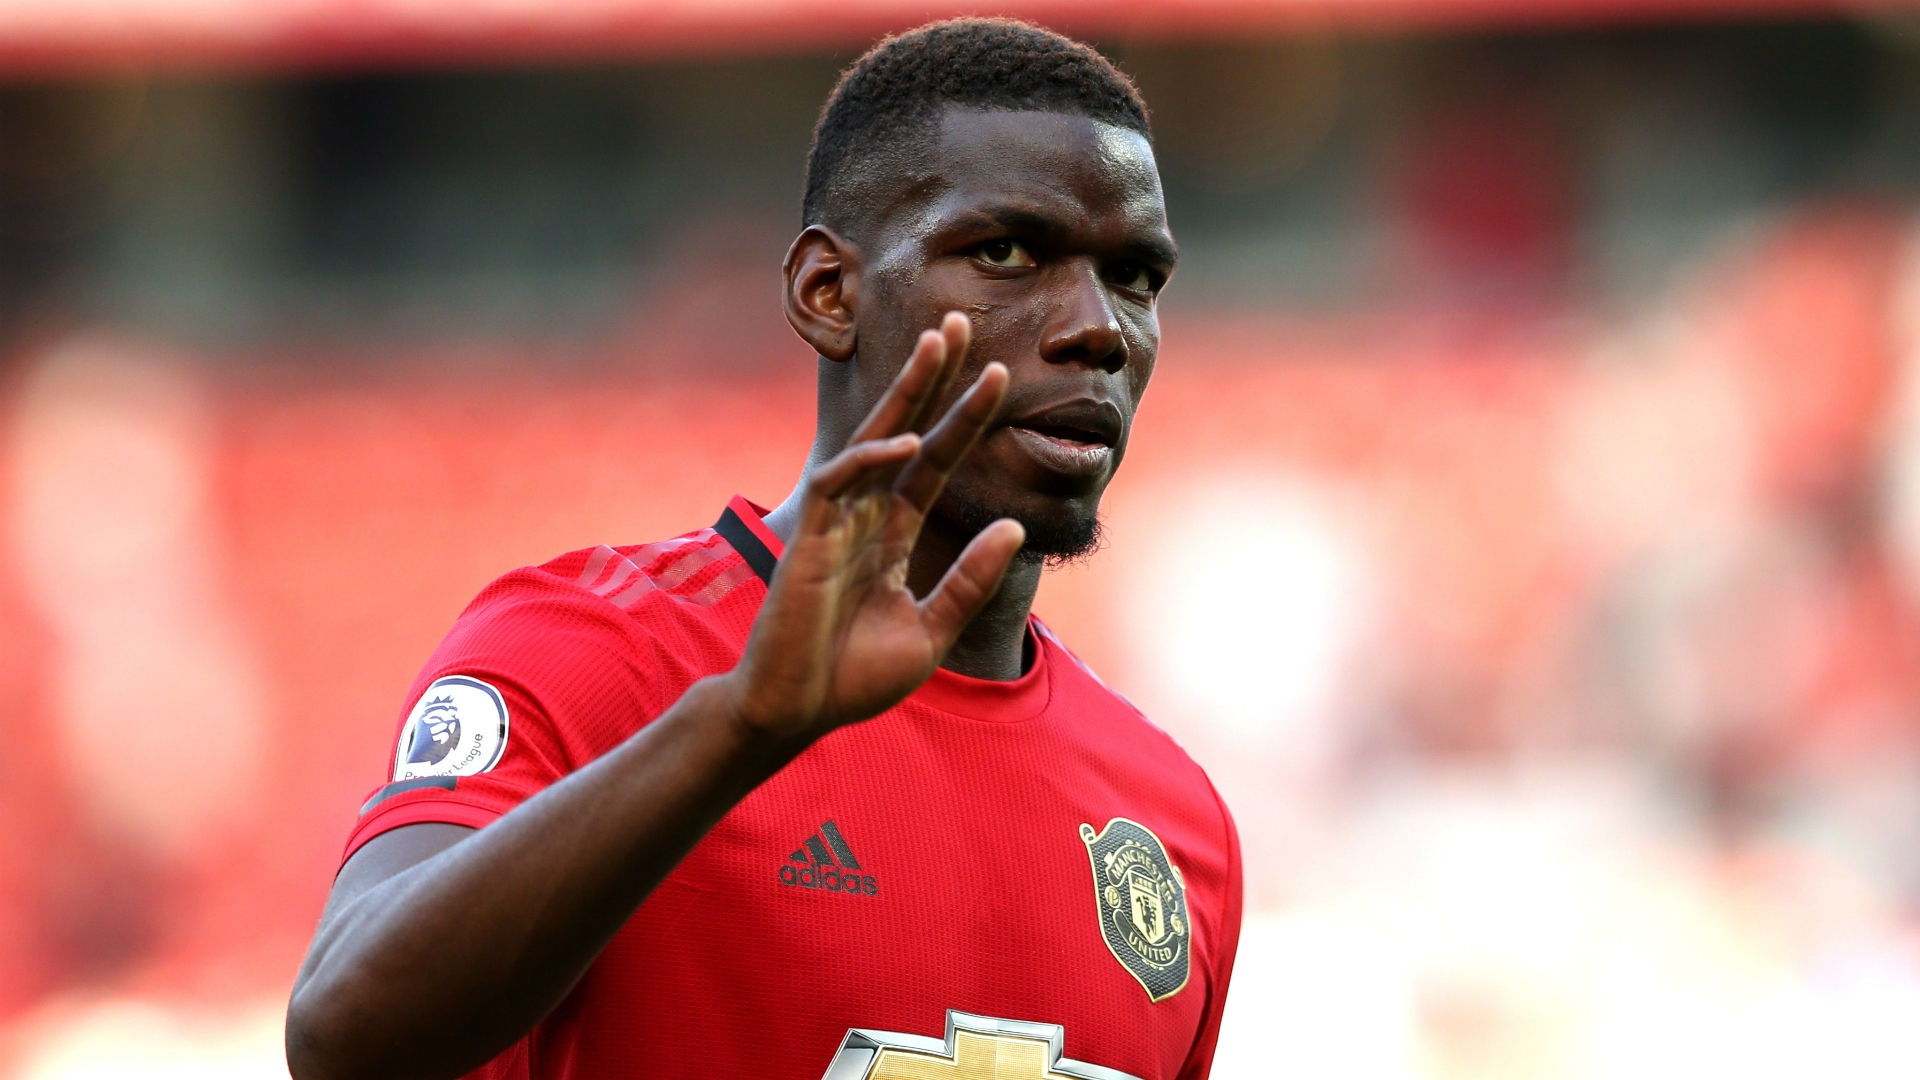 Solskjaer rules out Pogba sale, plays down Haaland speculation